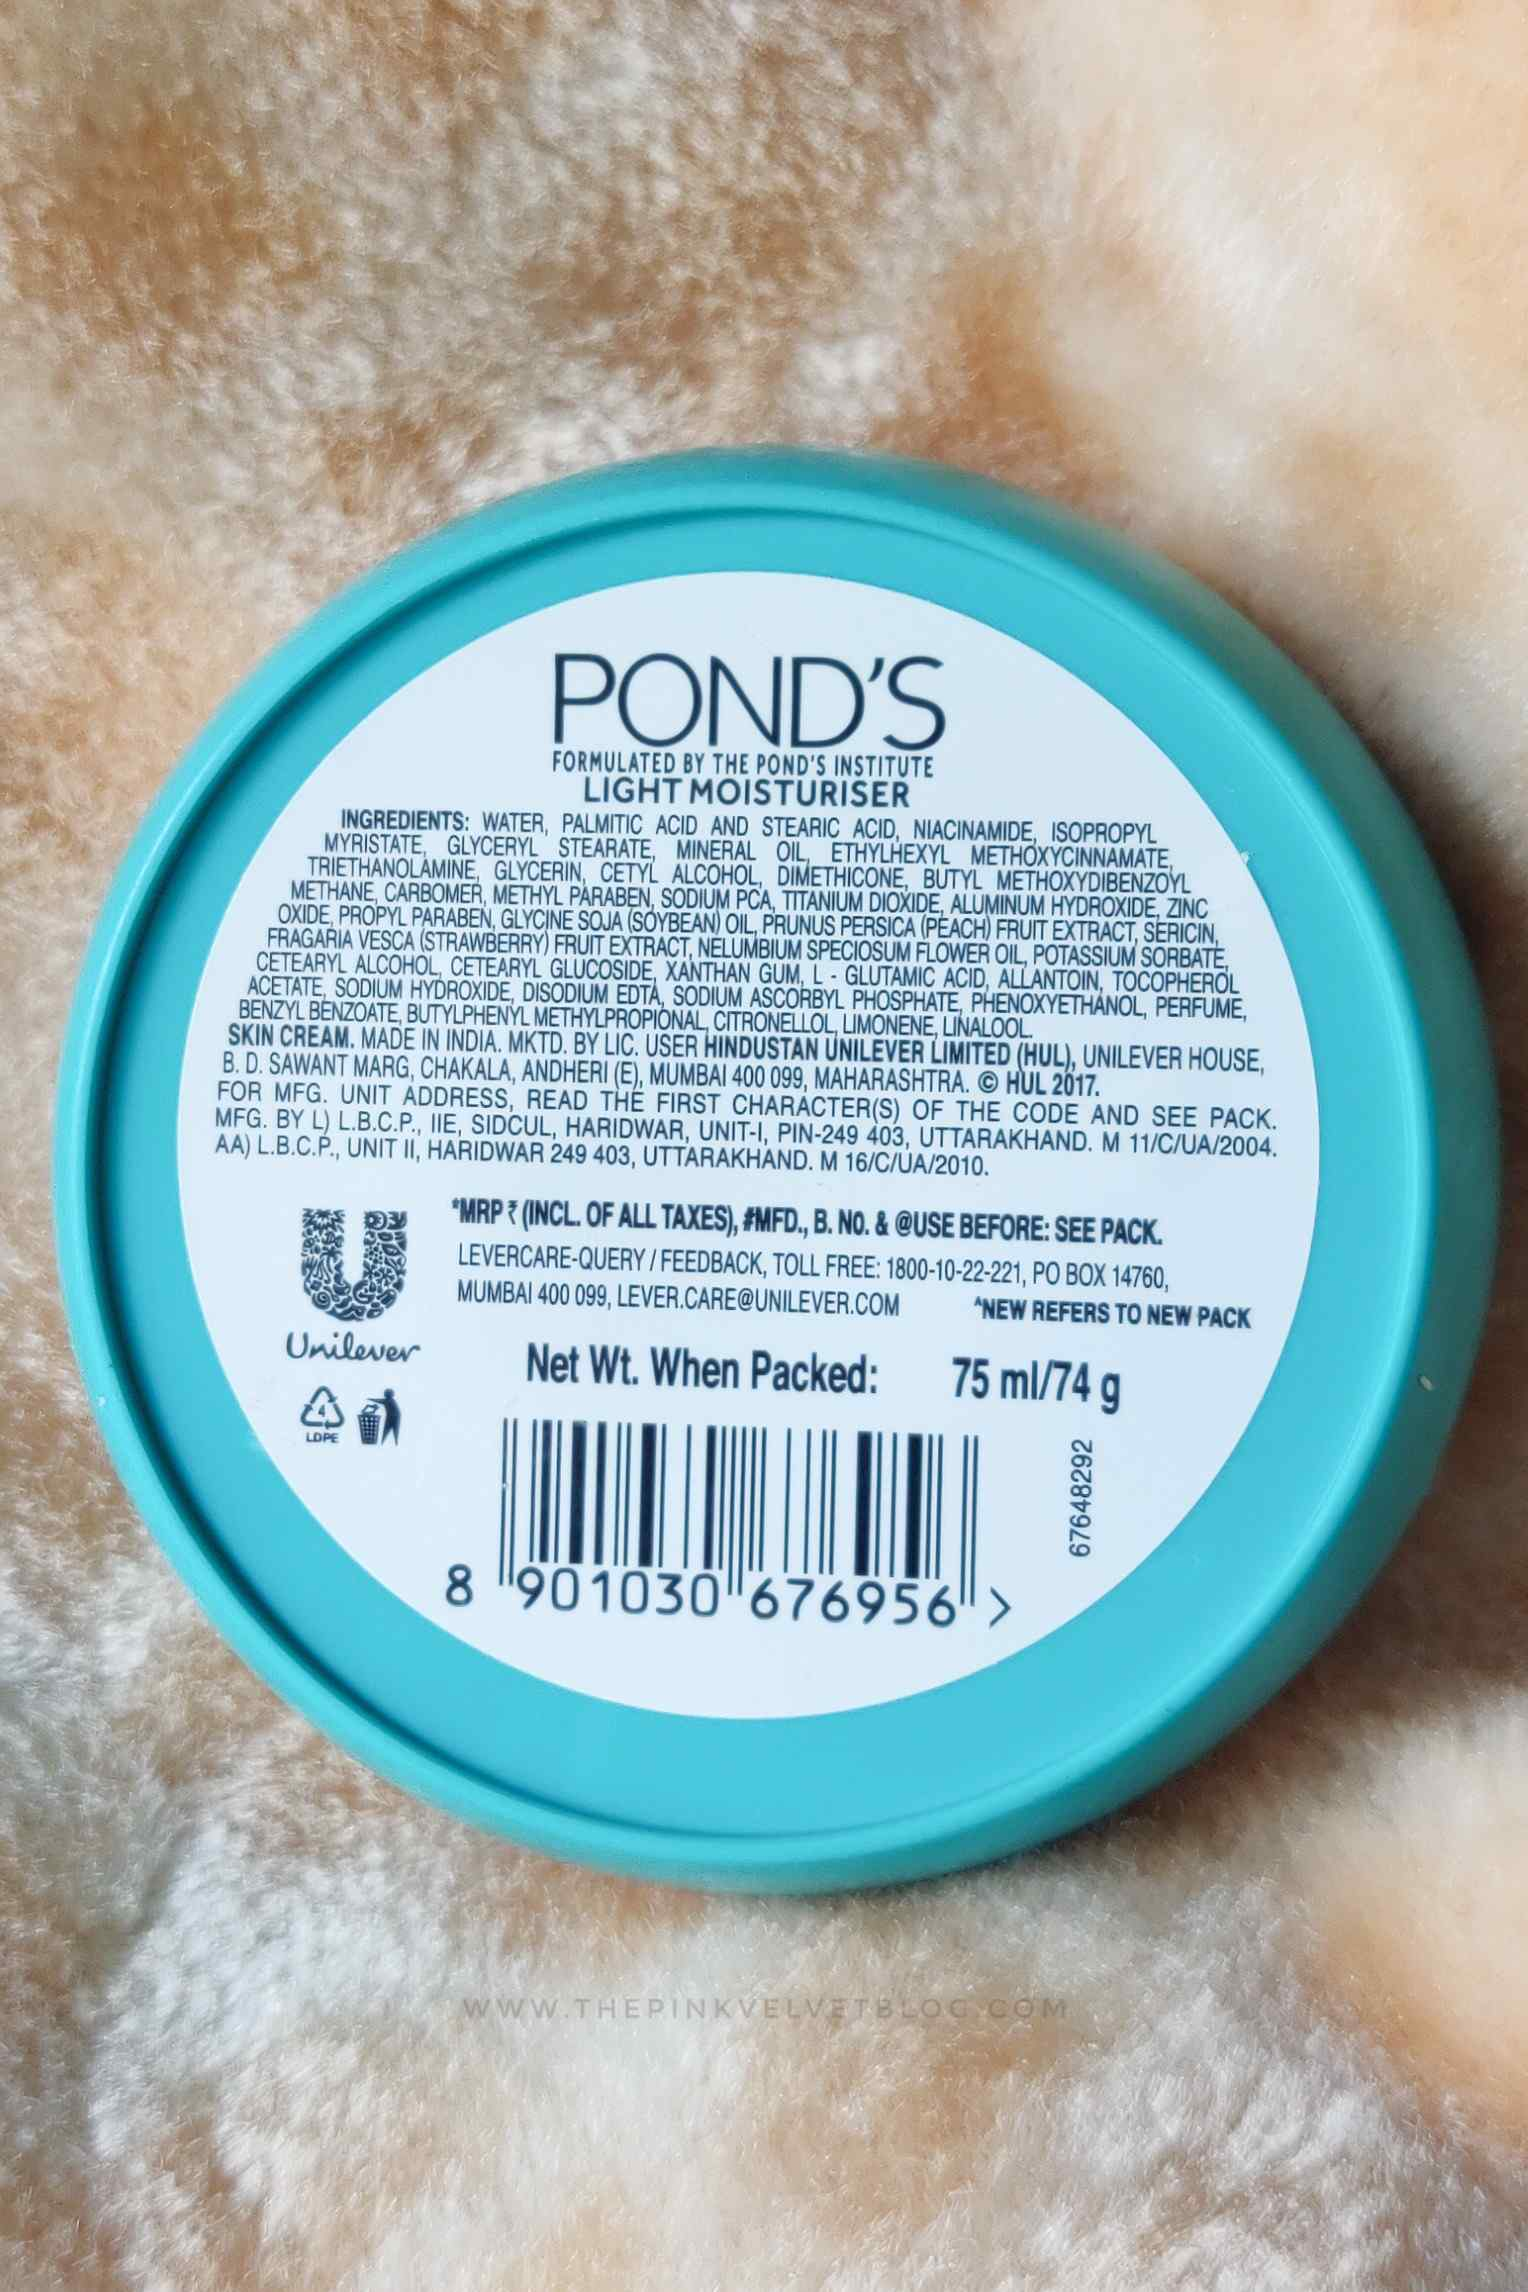 Ponds Light Moisturizer Ingredients Review